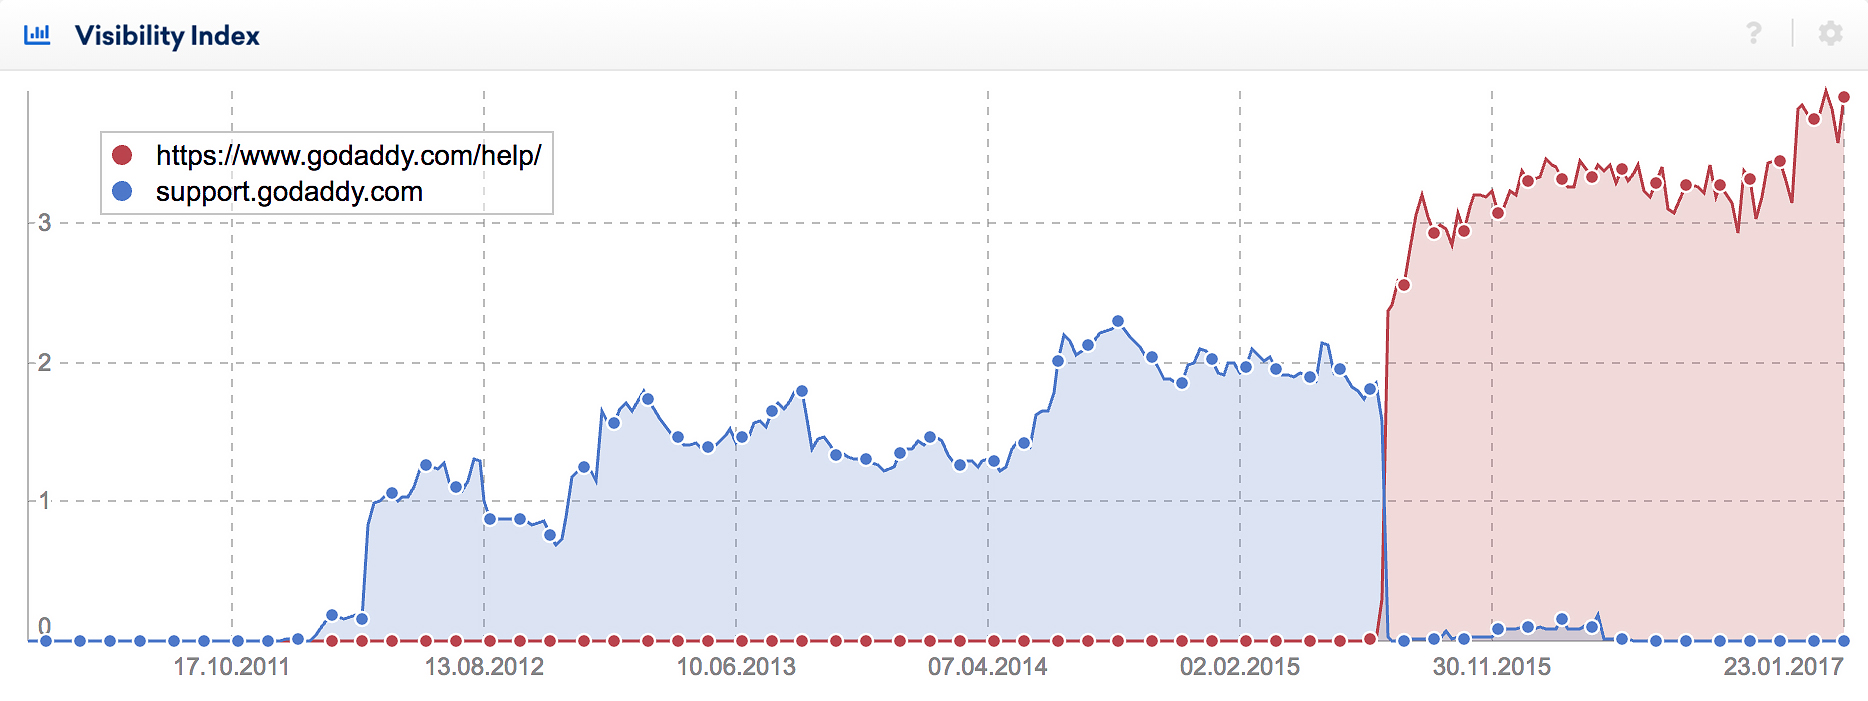 Visibility index of a domain move